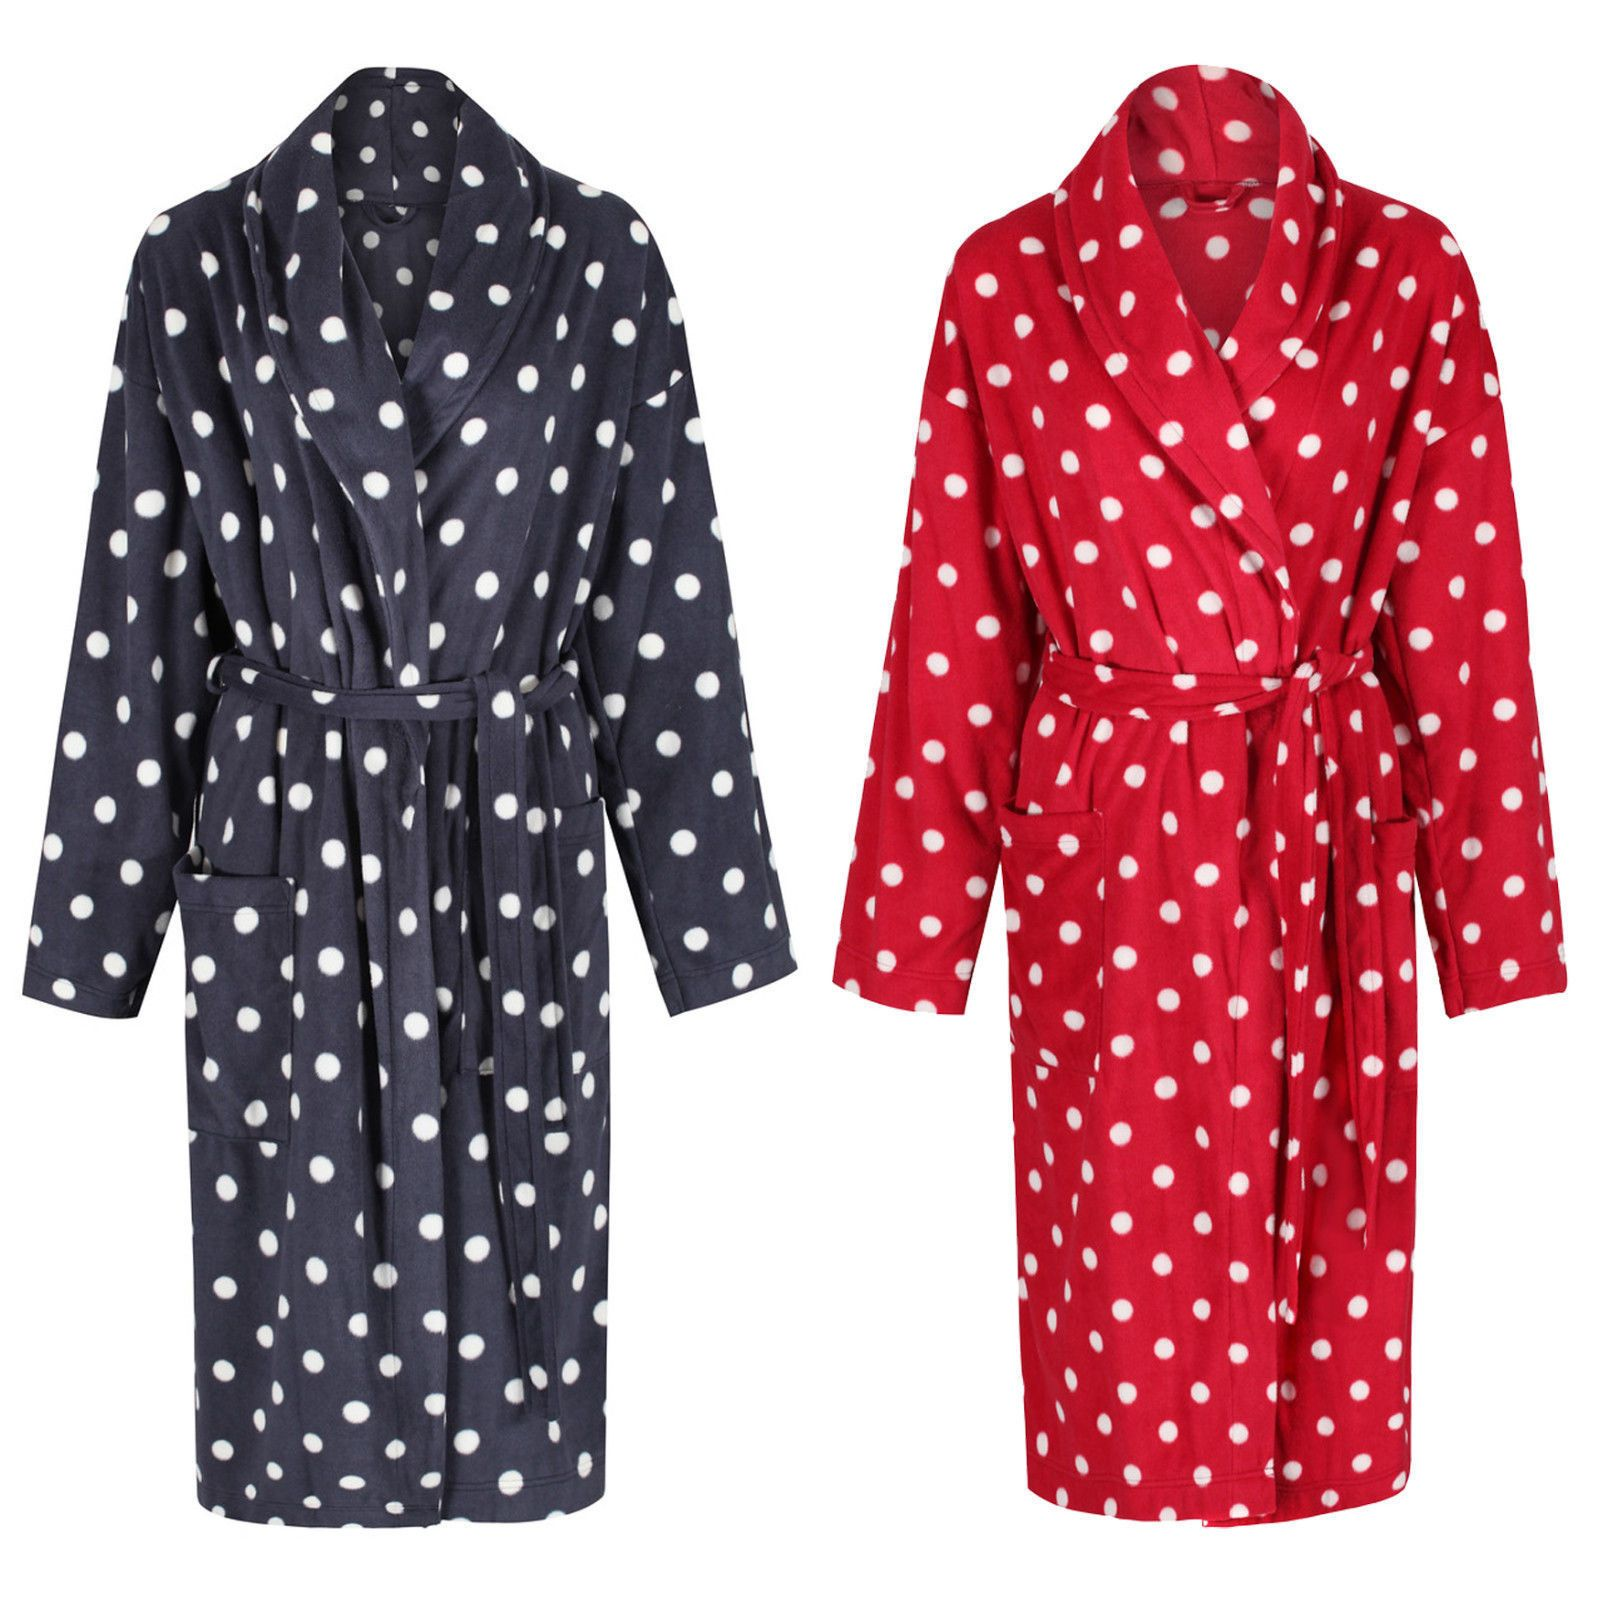 Ladies womens marks & spencer belted dressing gown 4 designs m&s ...